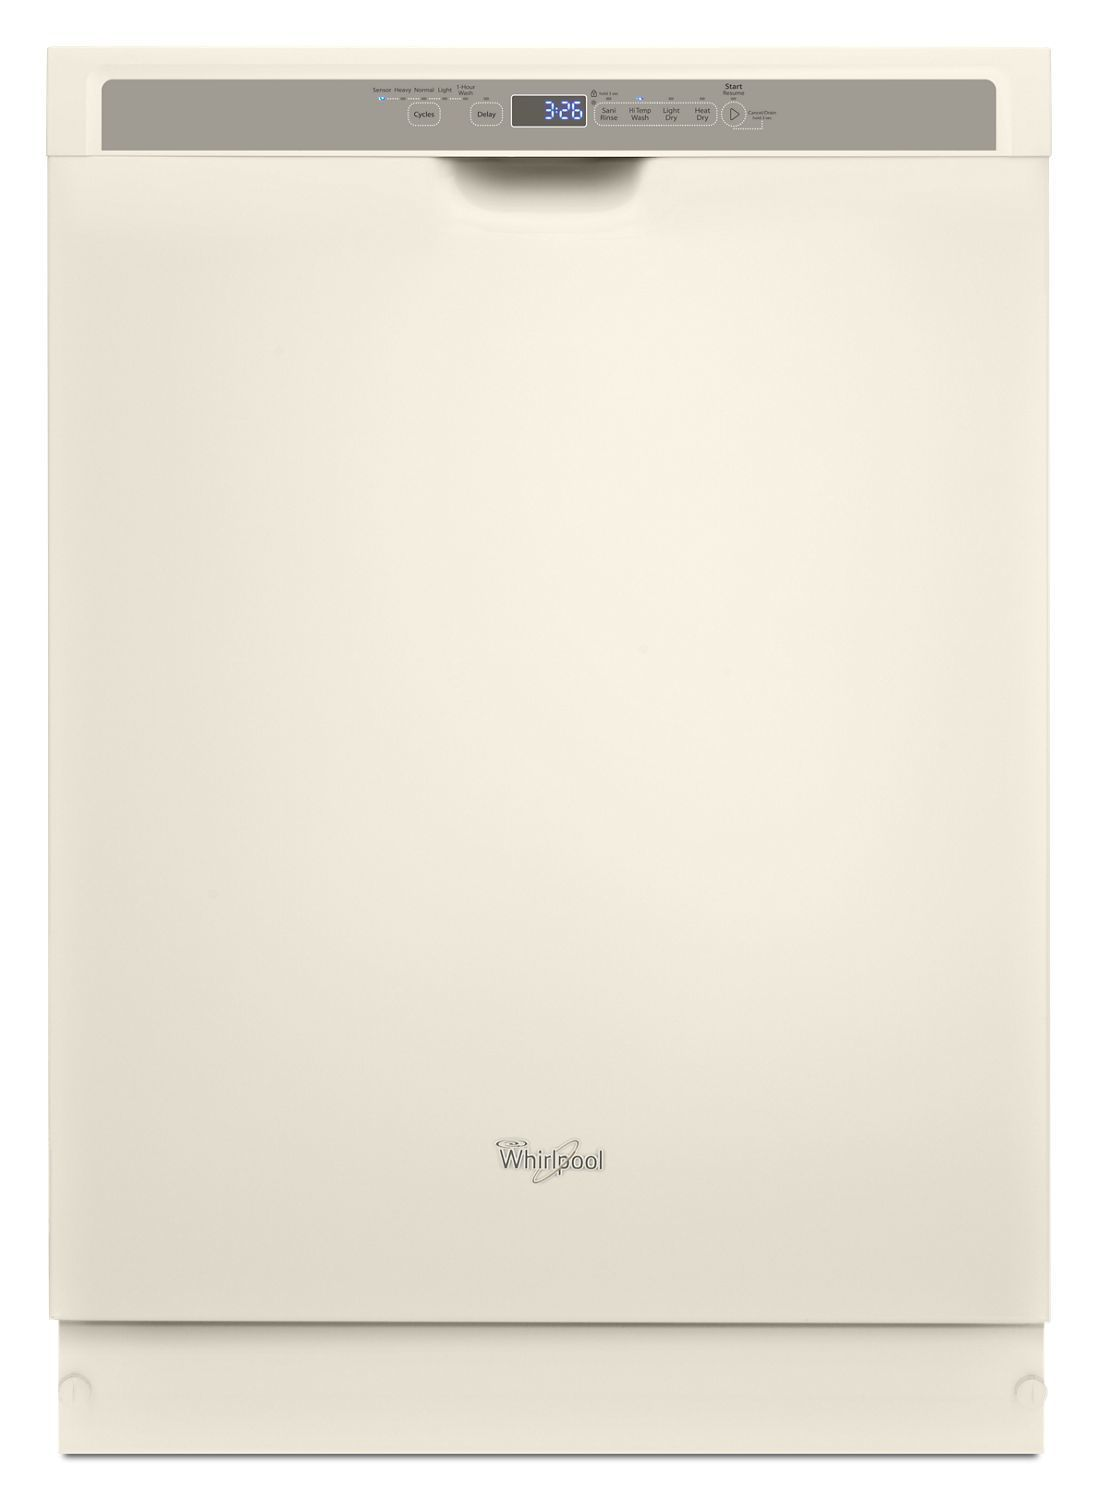 WhirlpoolStainless Steel Dishwasher With 1-Hour Wash Cycle Biscuit